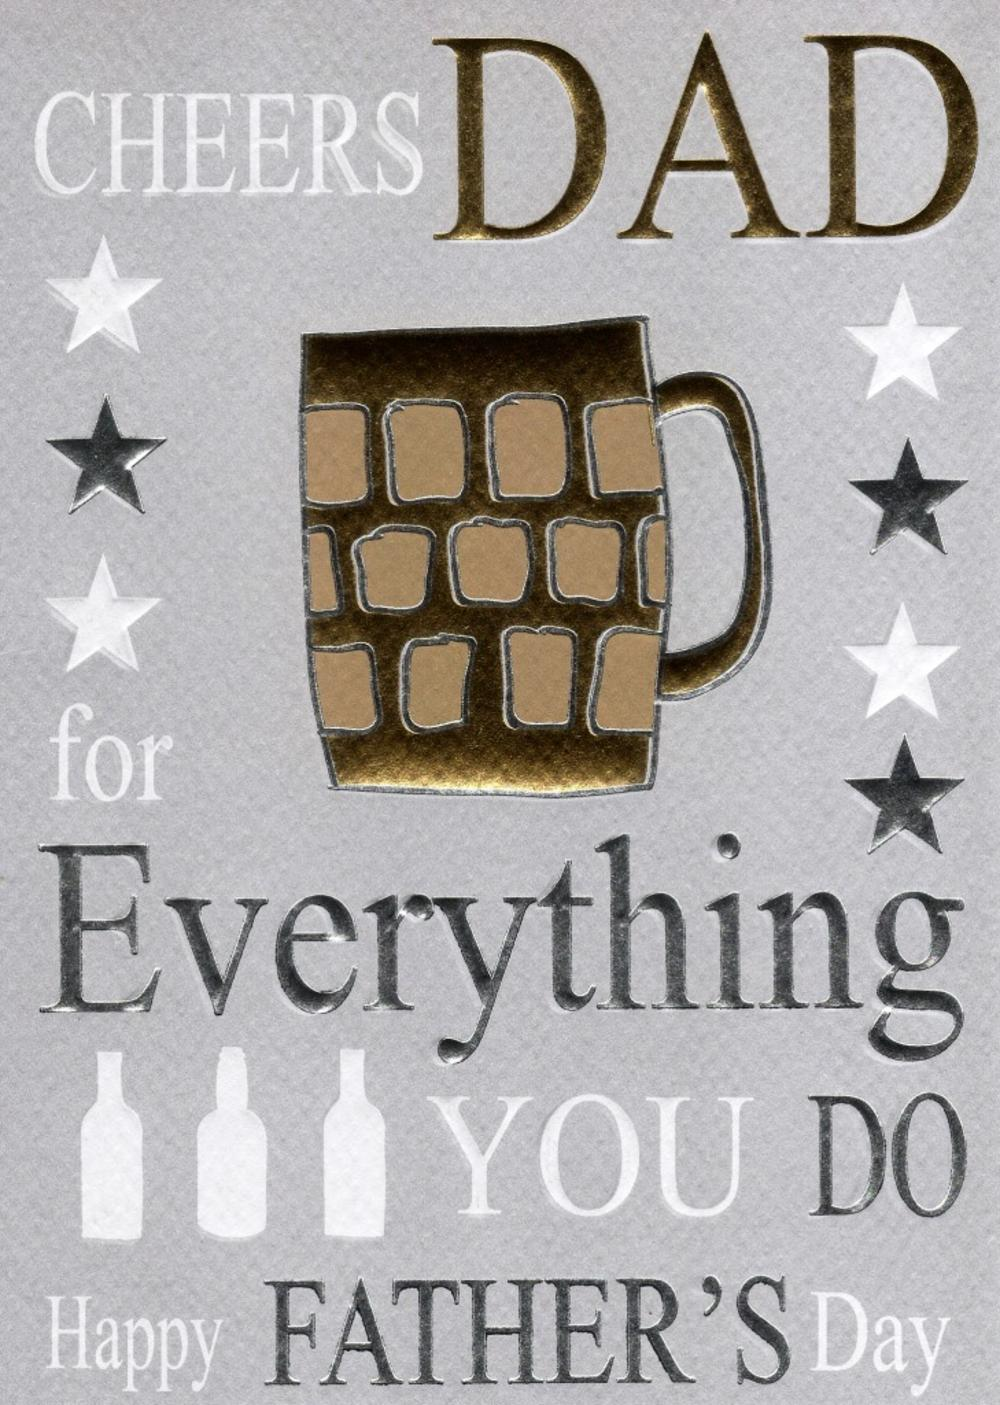 Cheers Dad Happy Father's Day Card